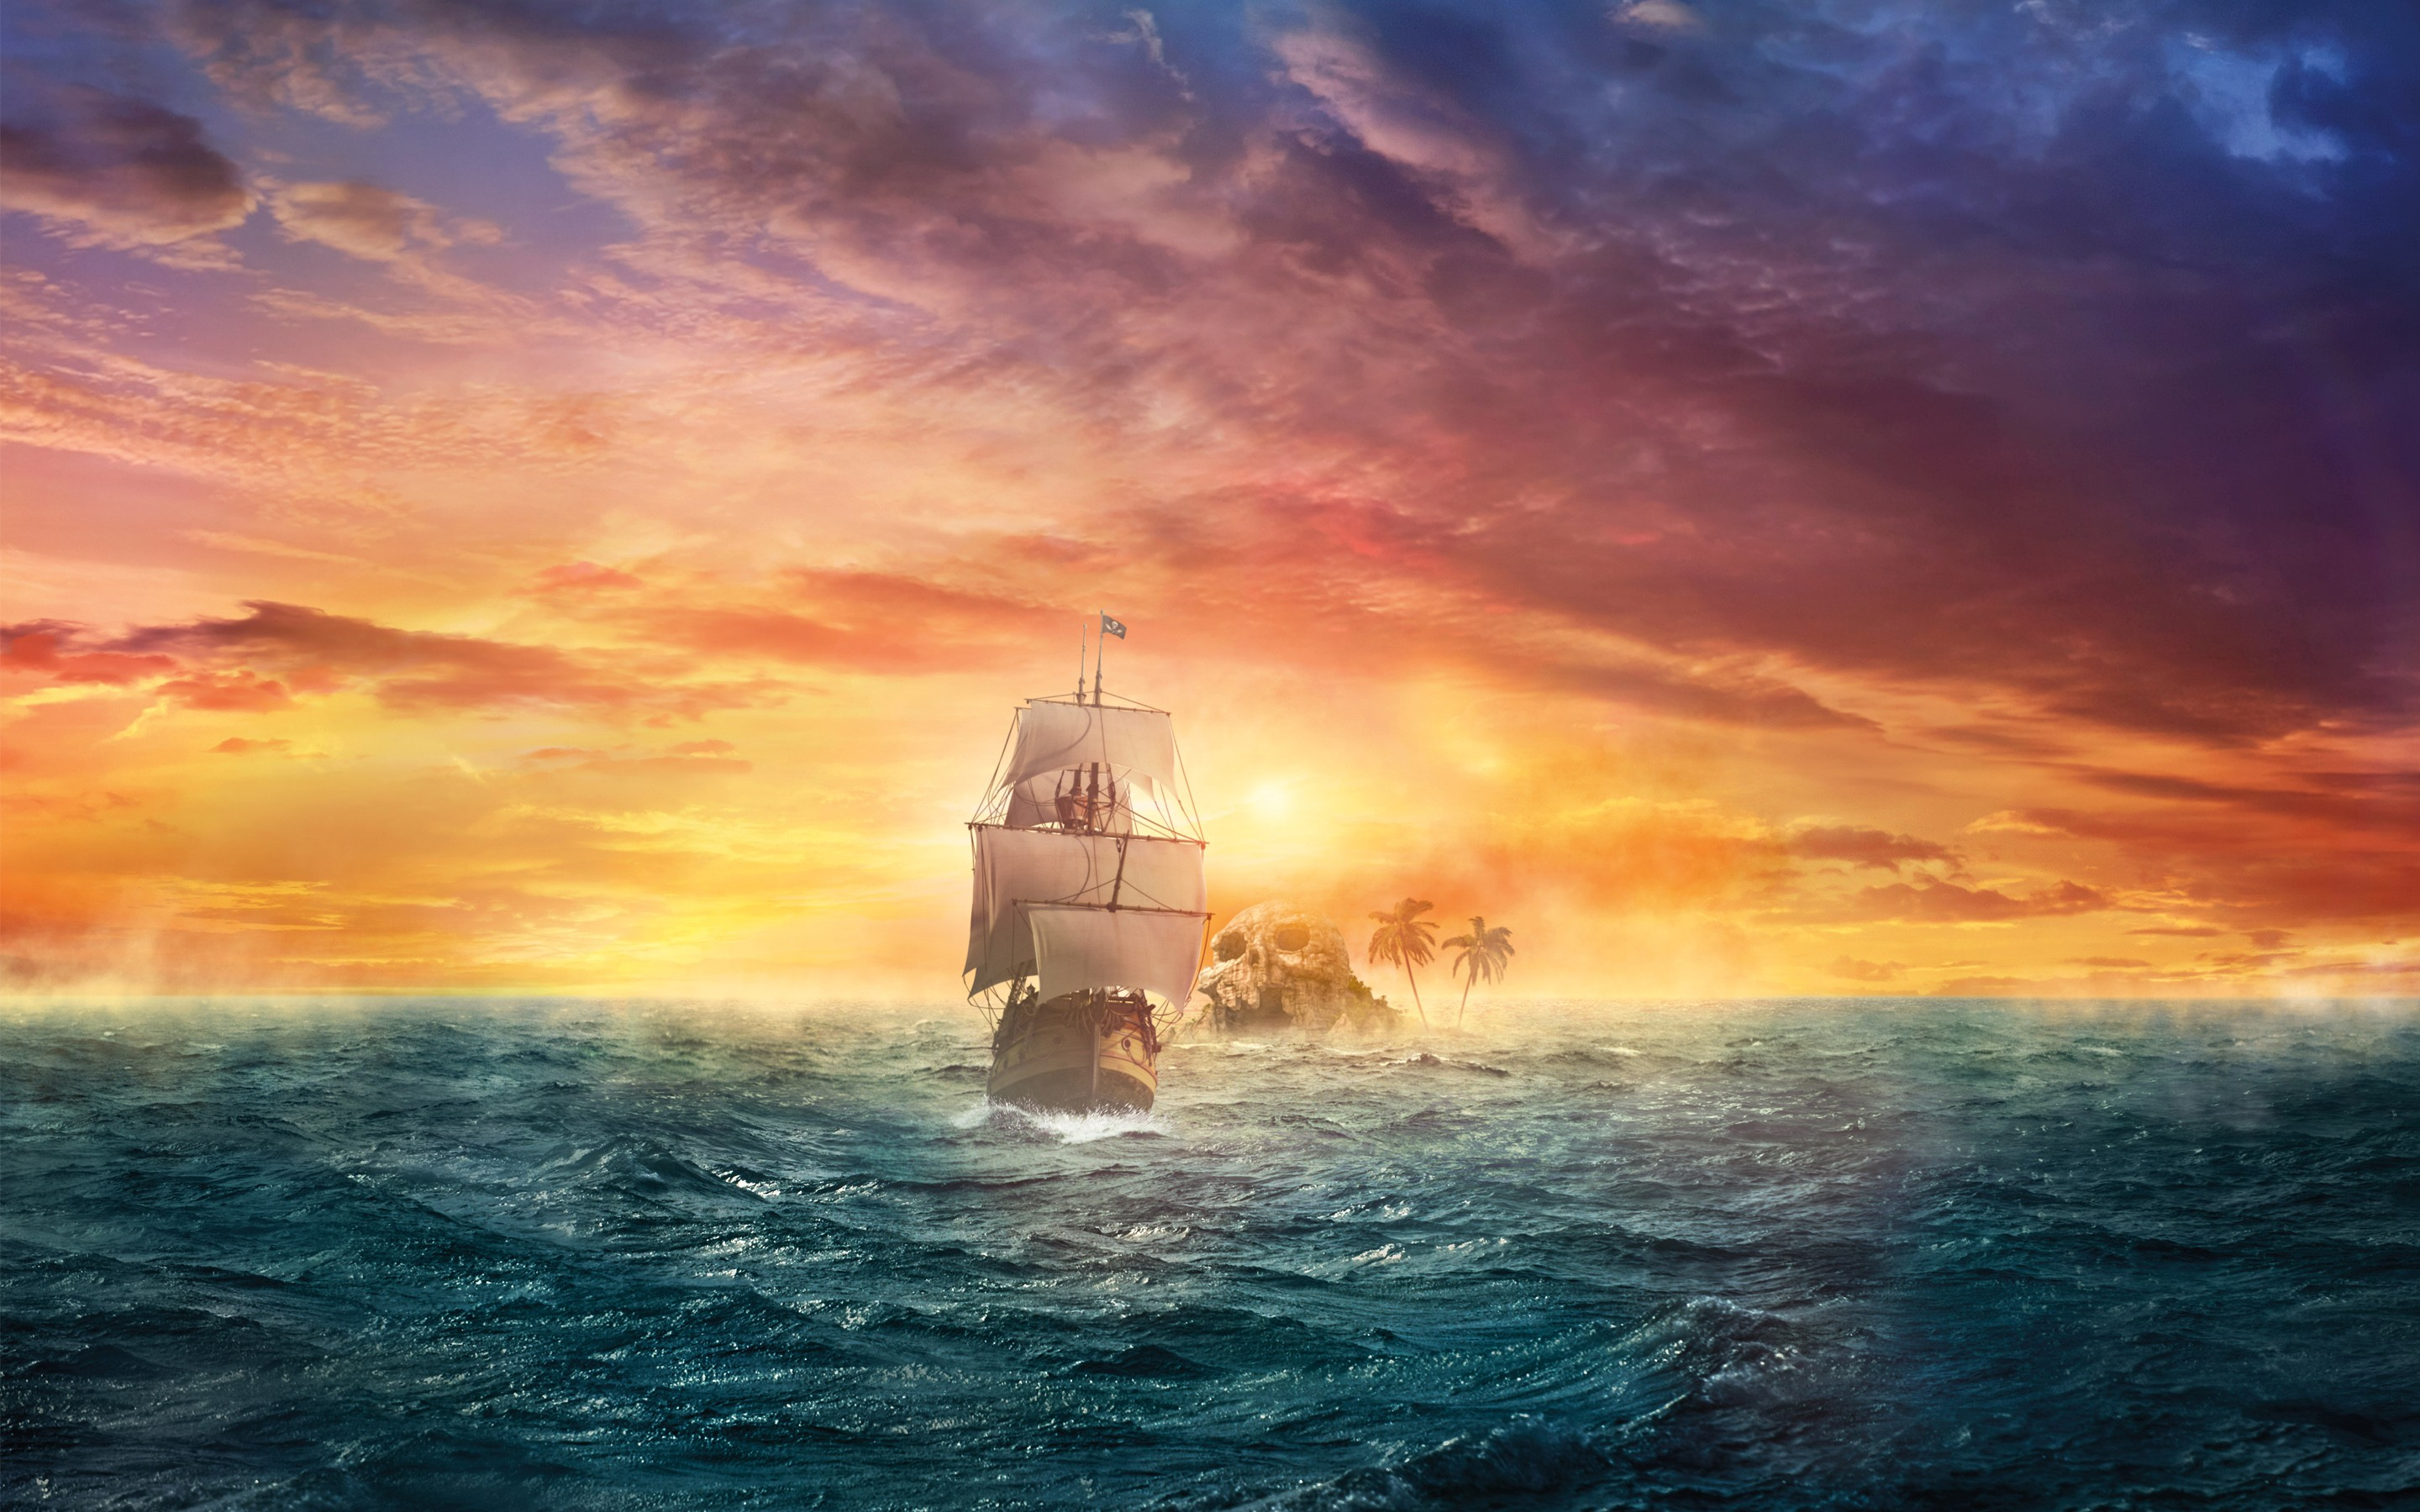 Pirate sail hd creative 4k wallpapers images - Anime pirate wallpaper ...